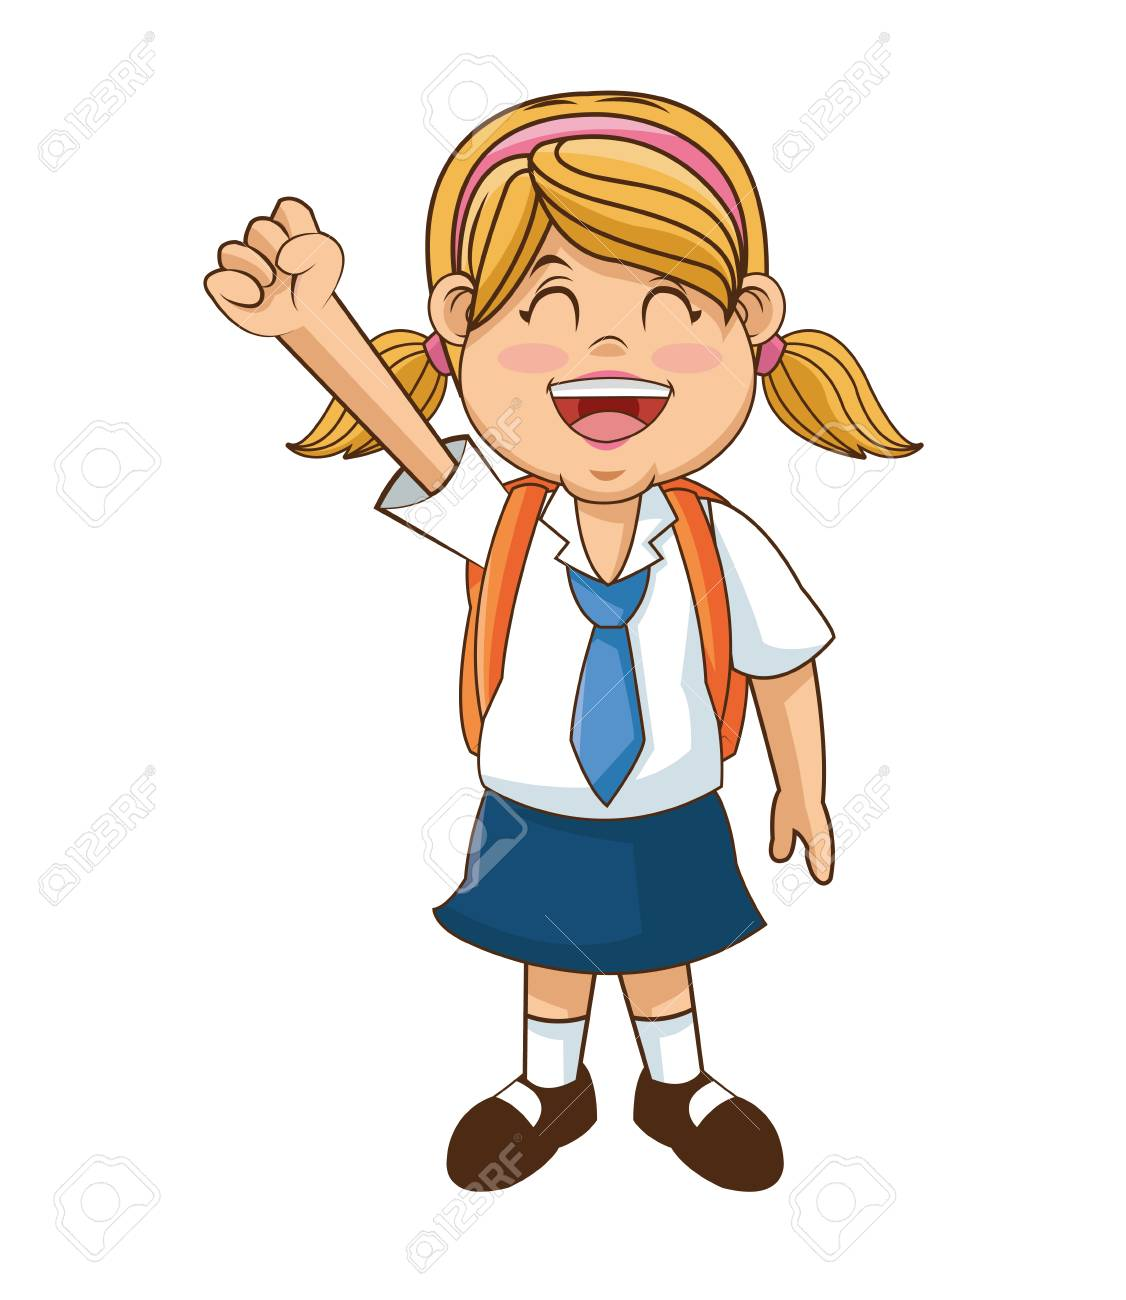 Girl Cartoon Student Back To School Education And Childhood Royalty Free Cliparts Vectors And Stock Illustration Image 63284305